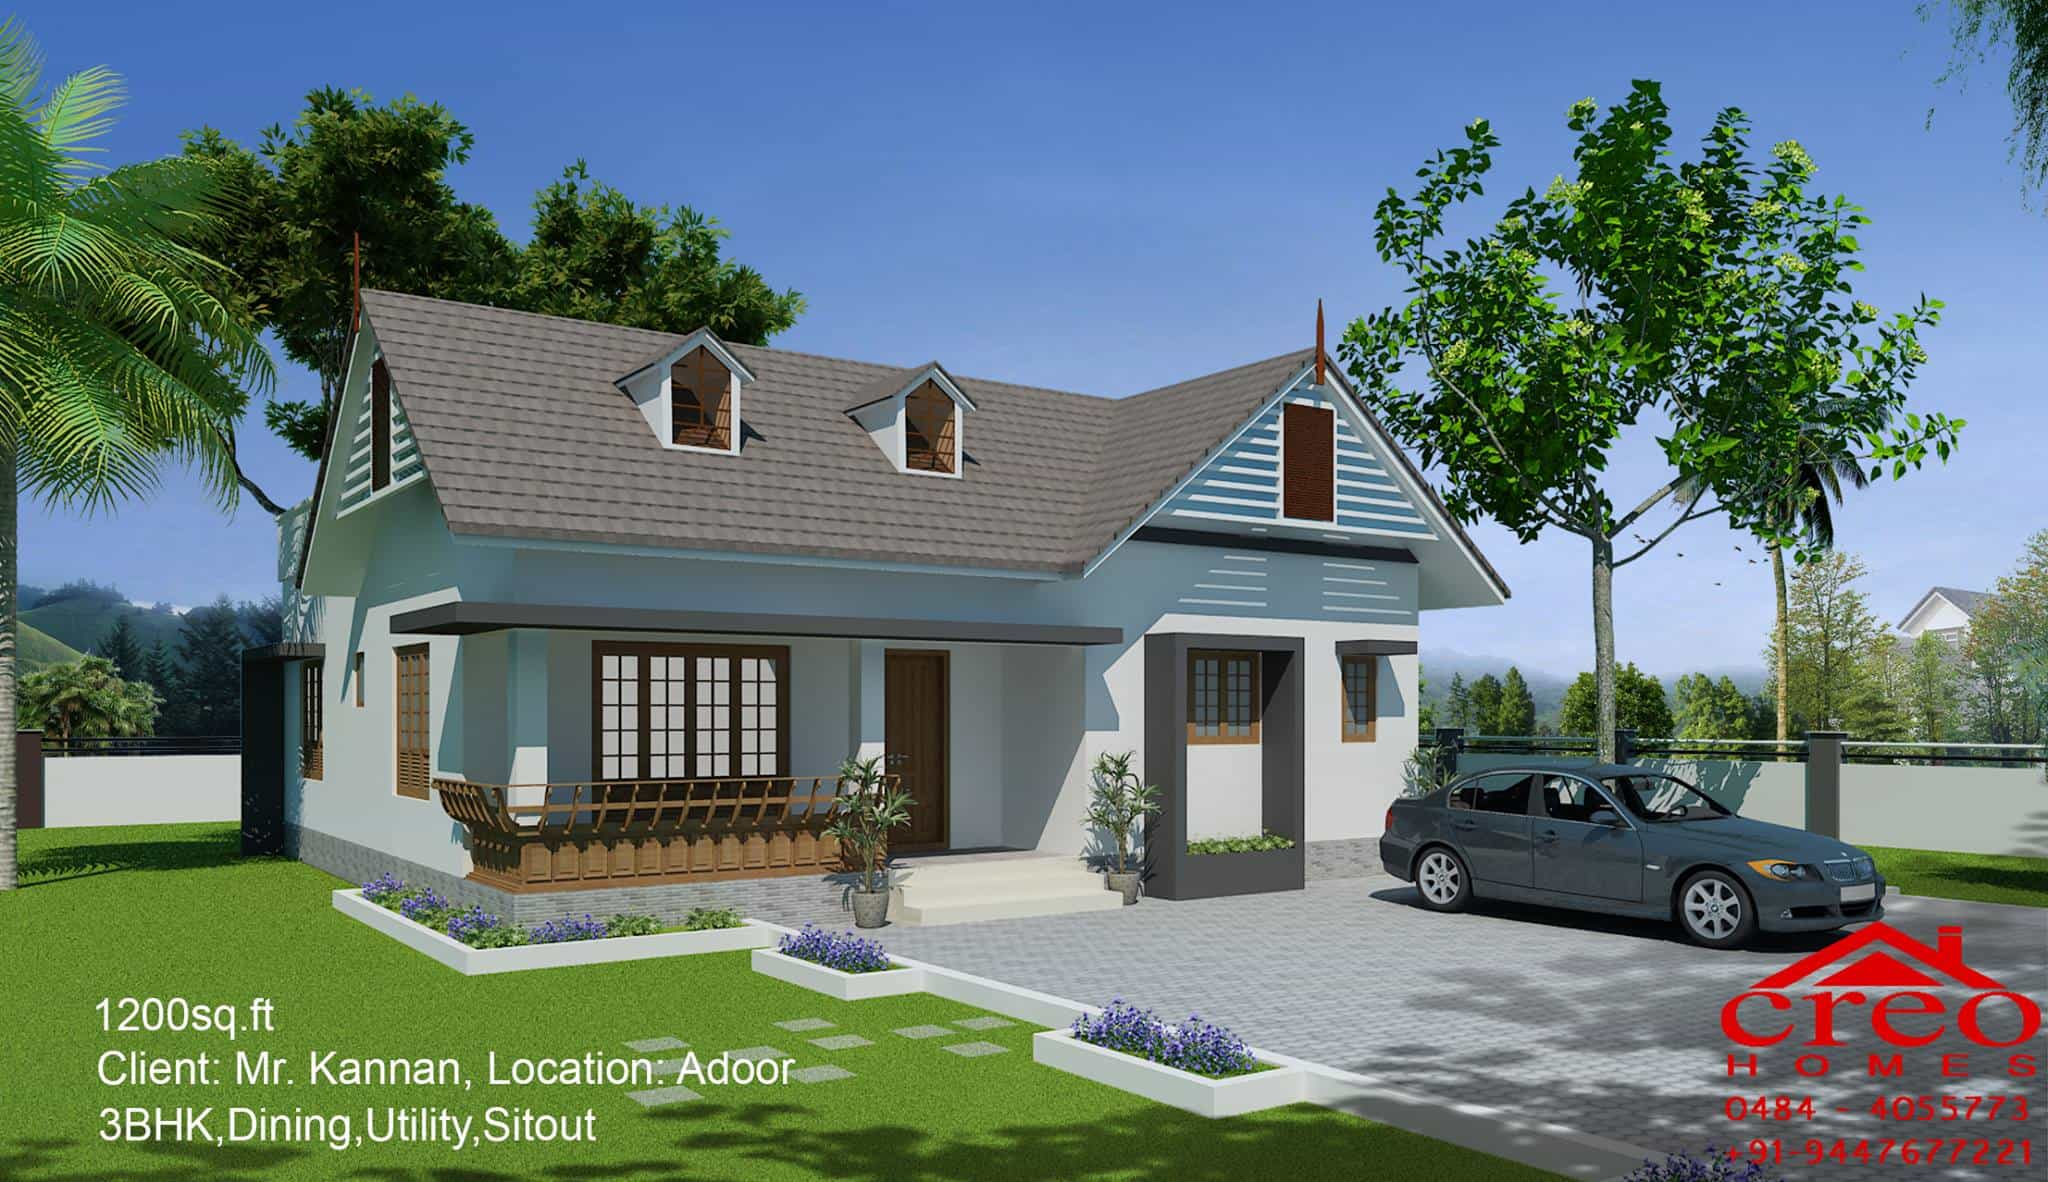 Kerala home design house plans indian budget models for Kerala house construction plans